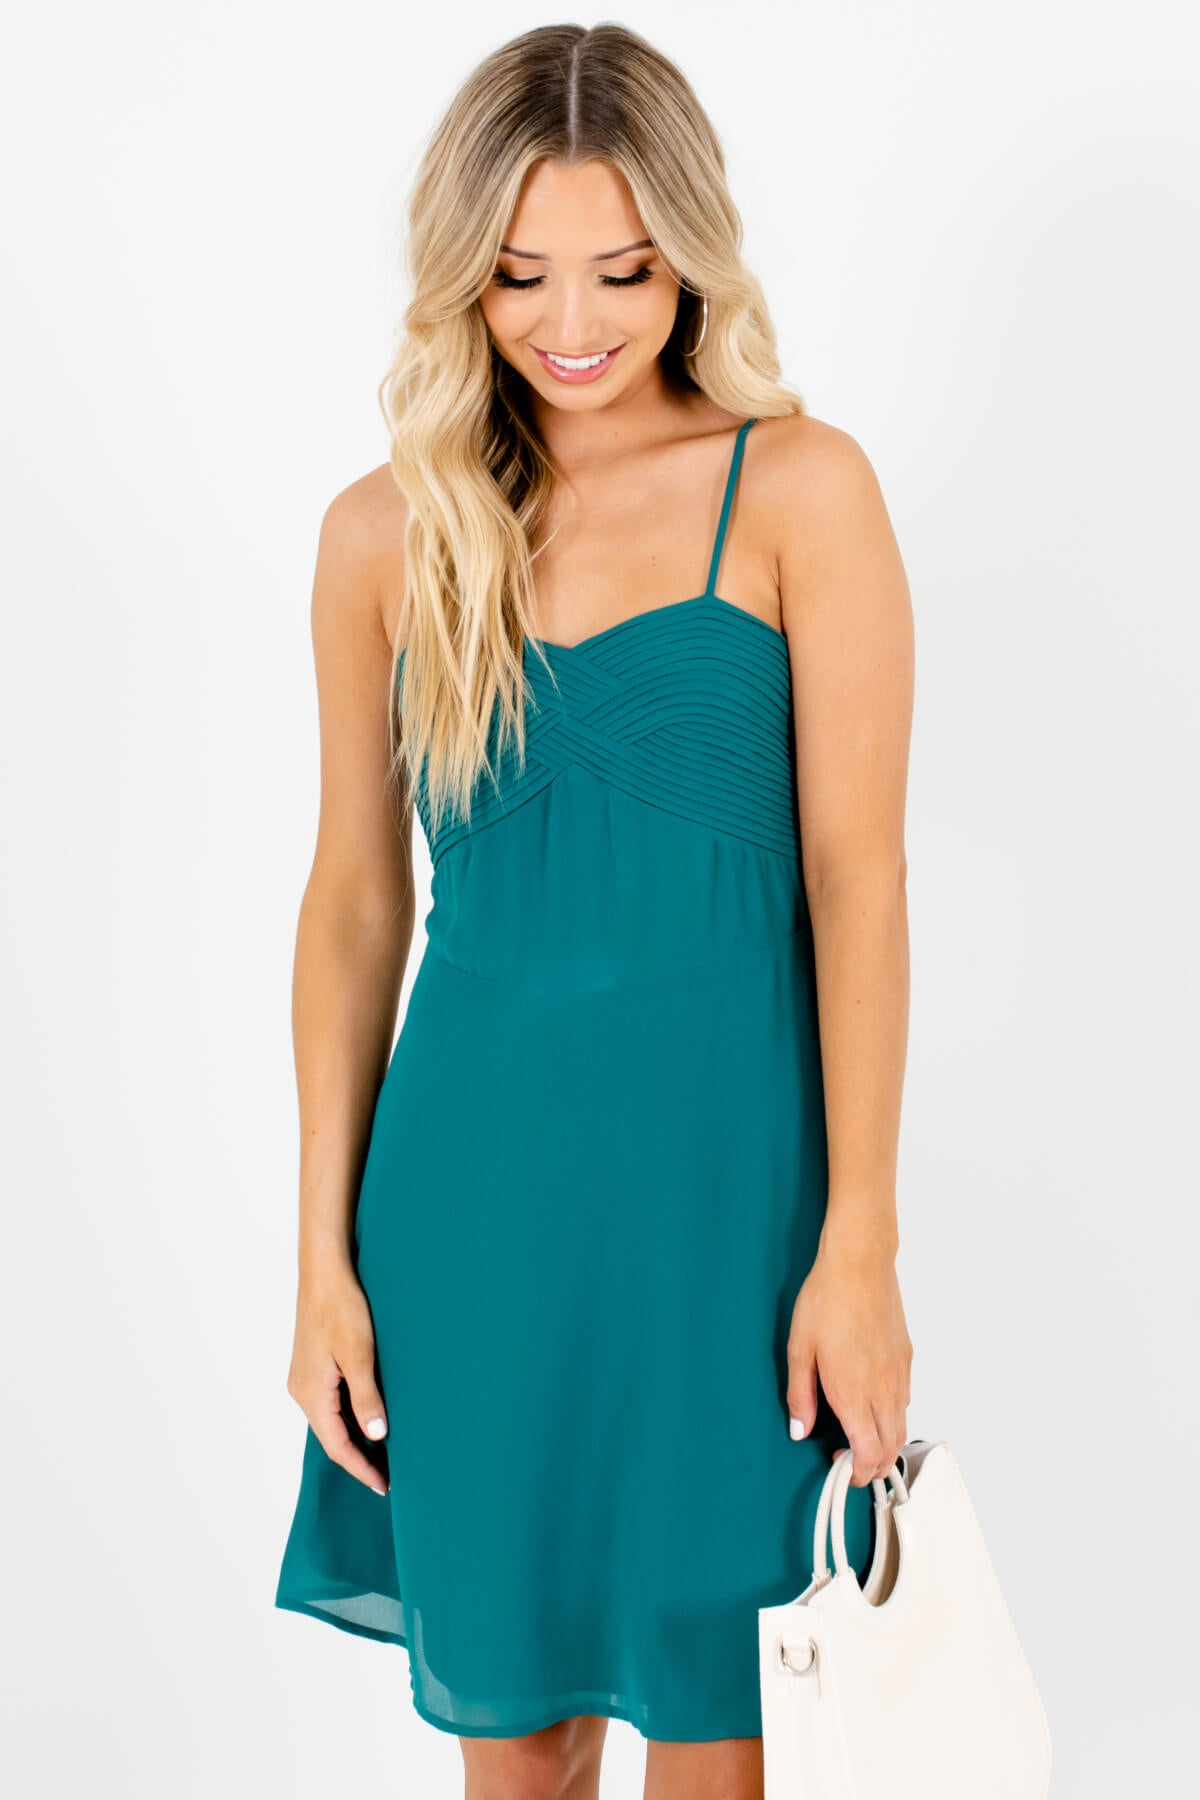 Teal Blue Pleated Neckline Detailed Boutique Mini Dresses for Women